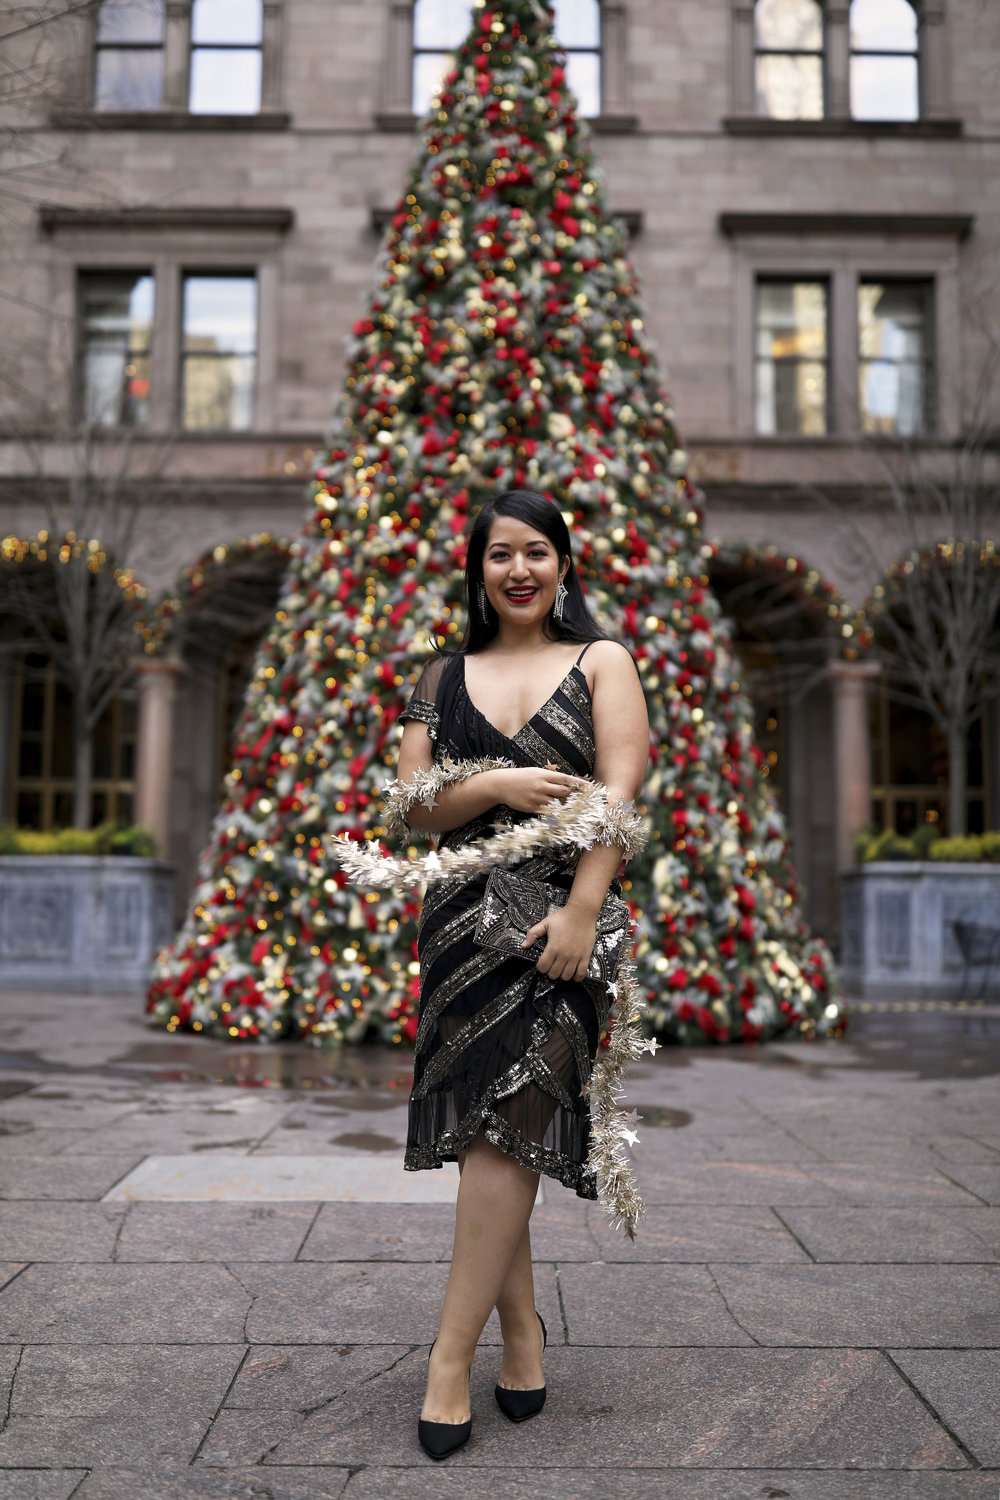 Krity S x Christmas Outfit x Beaded Short Dress1.jpg